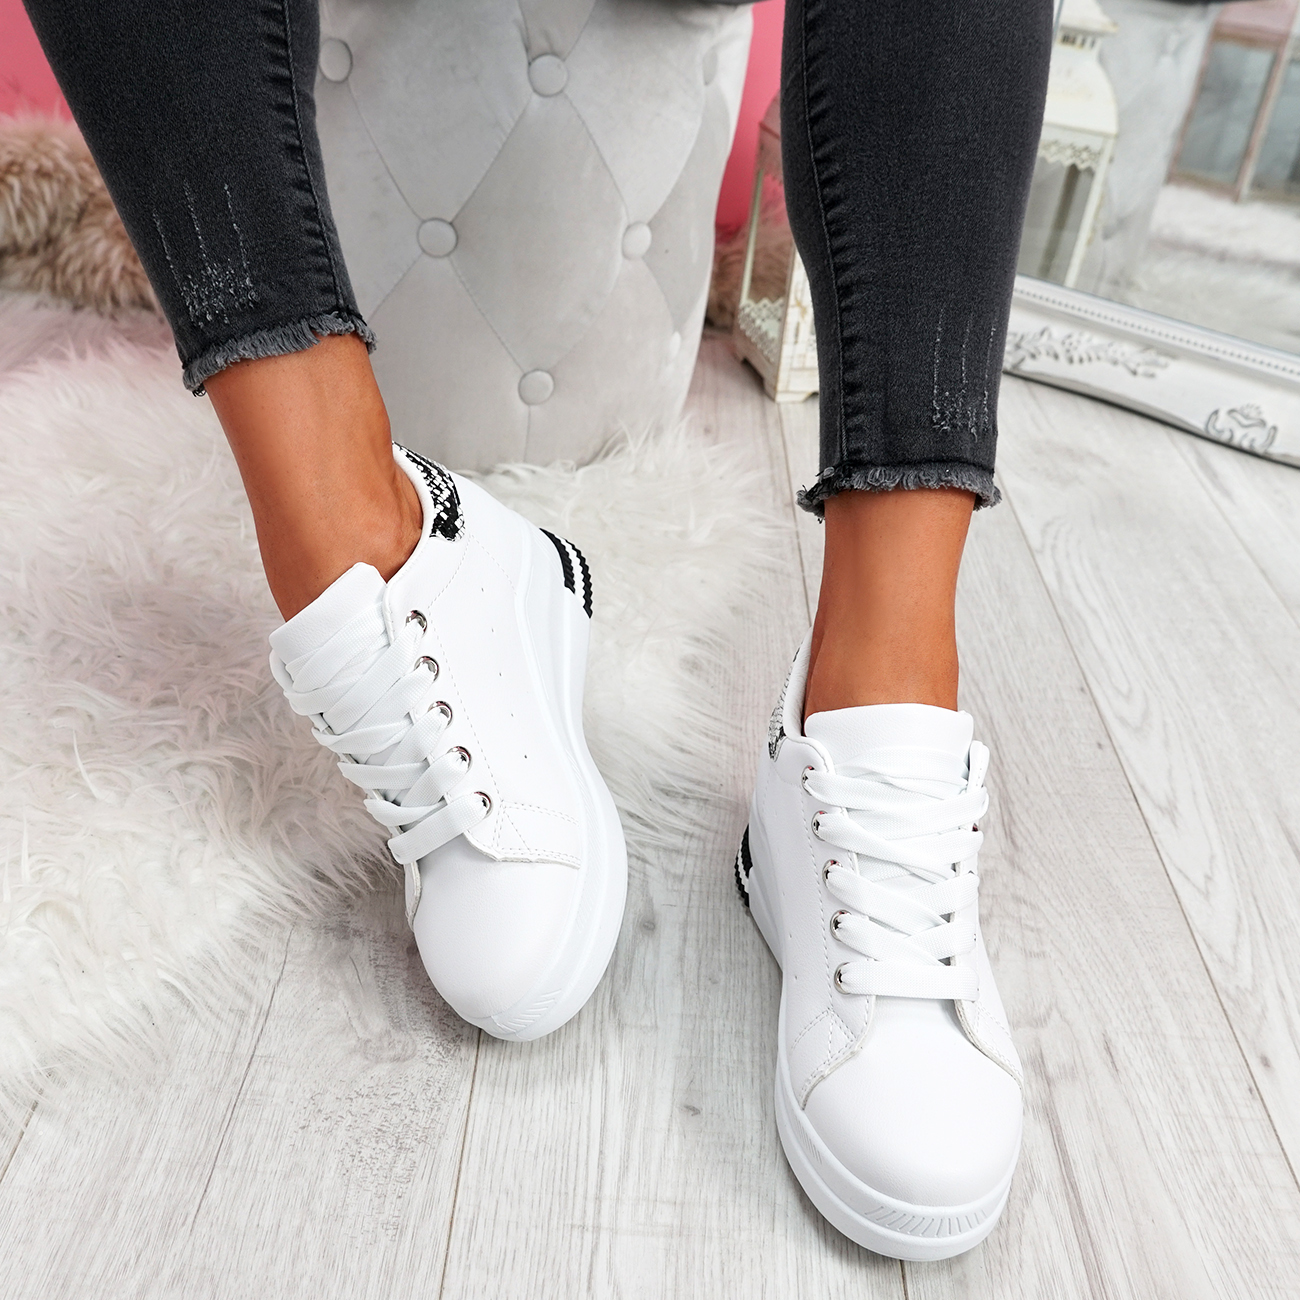 WOMENS LADIES LACE UP WEDGE PARTY TRAINERS WOMEN CASUAL FASHION SNEAKERS  SHOES   eBay